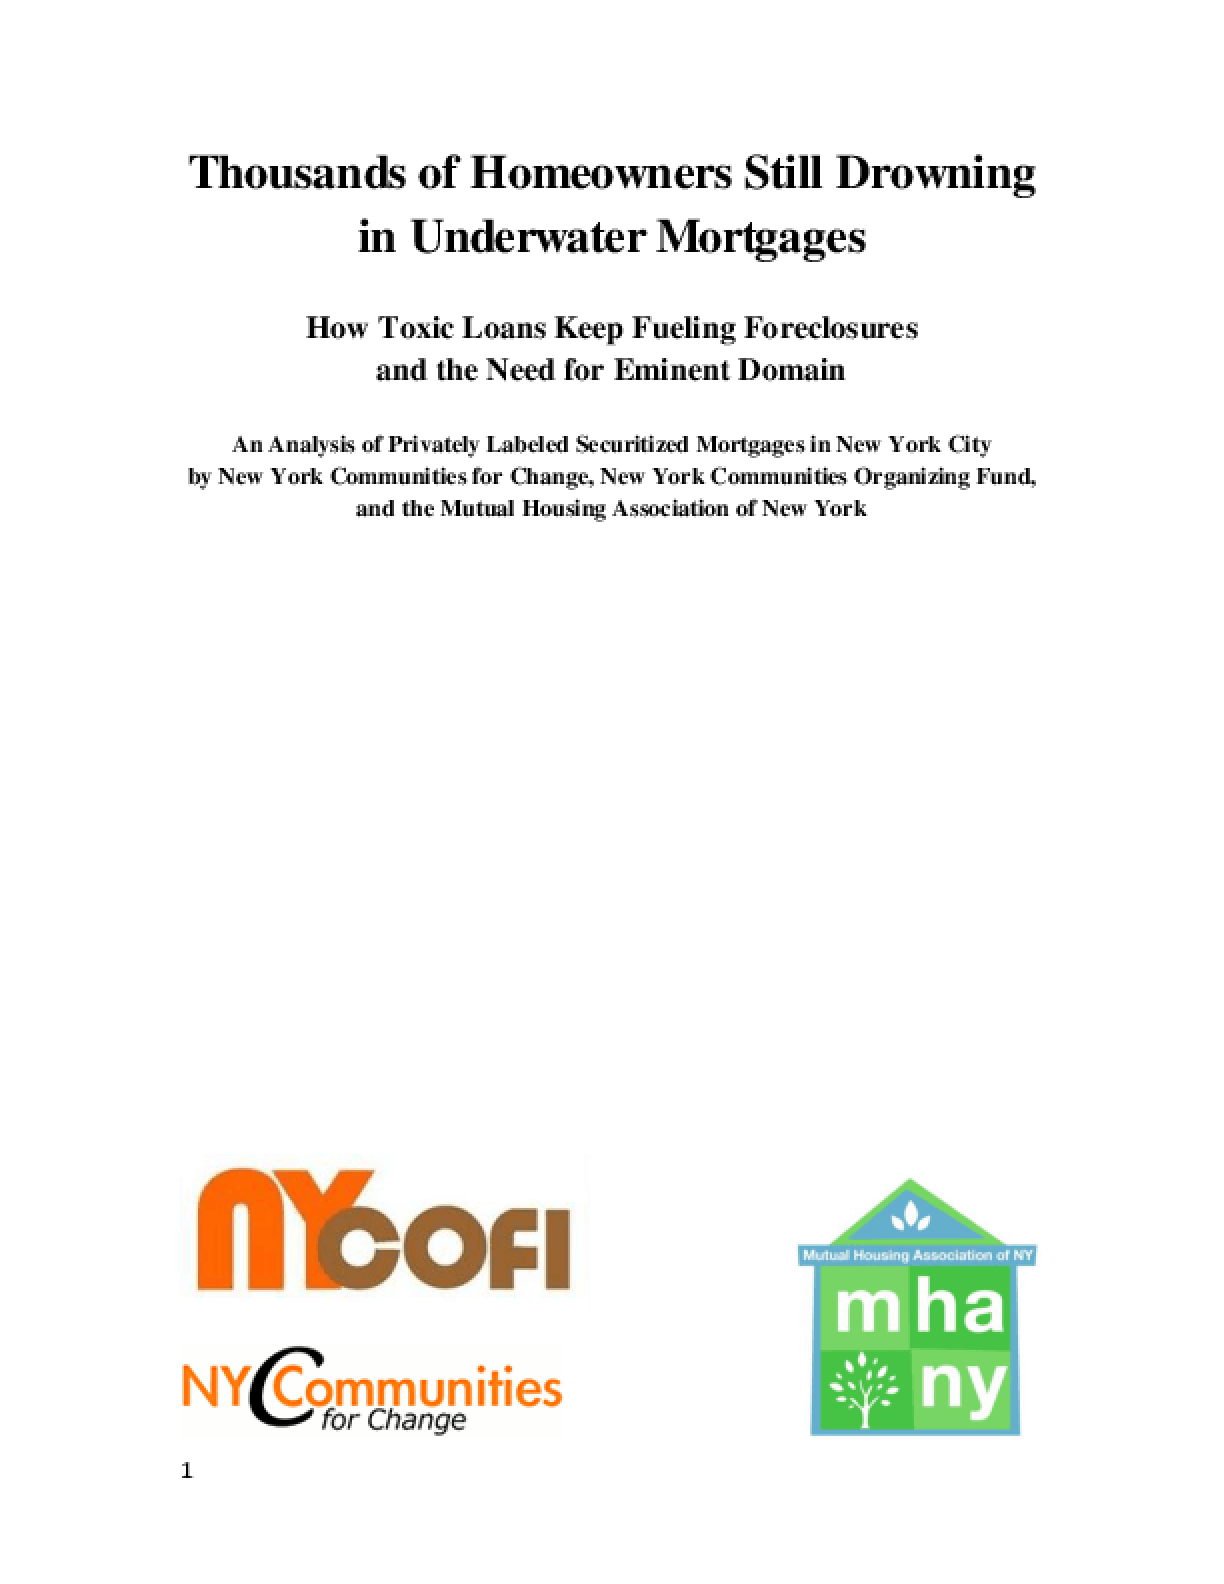 Thousands of Homeowners Still Drowning in Underwater Mortgages: How Toxic Loans Keep Fueling Foreclosures and the Need for Eminent Domain